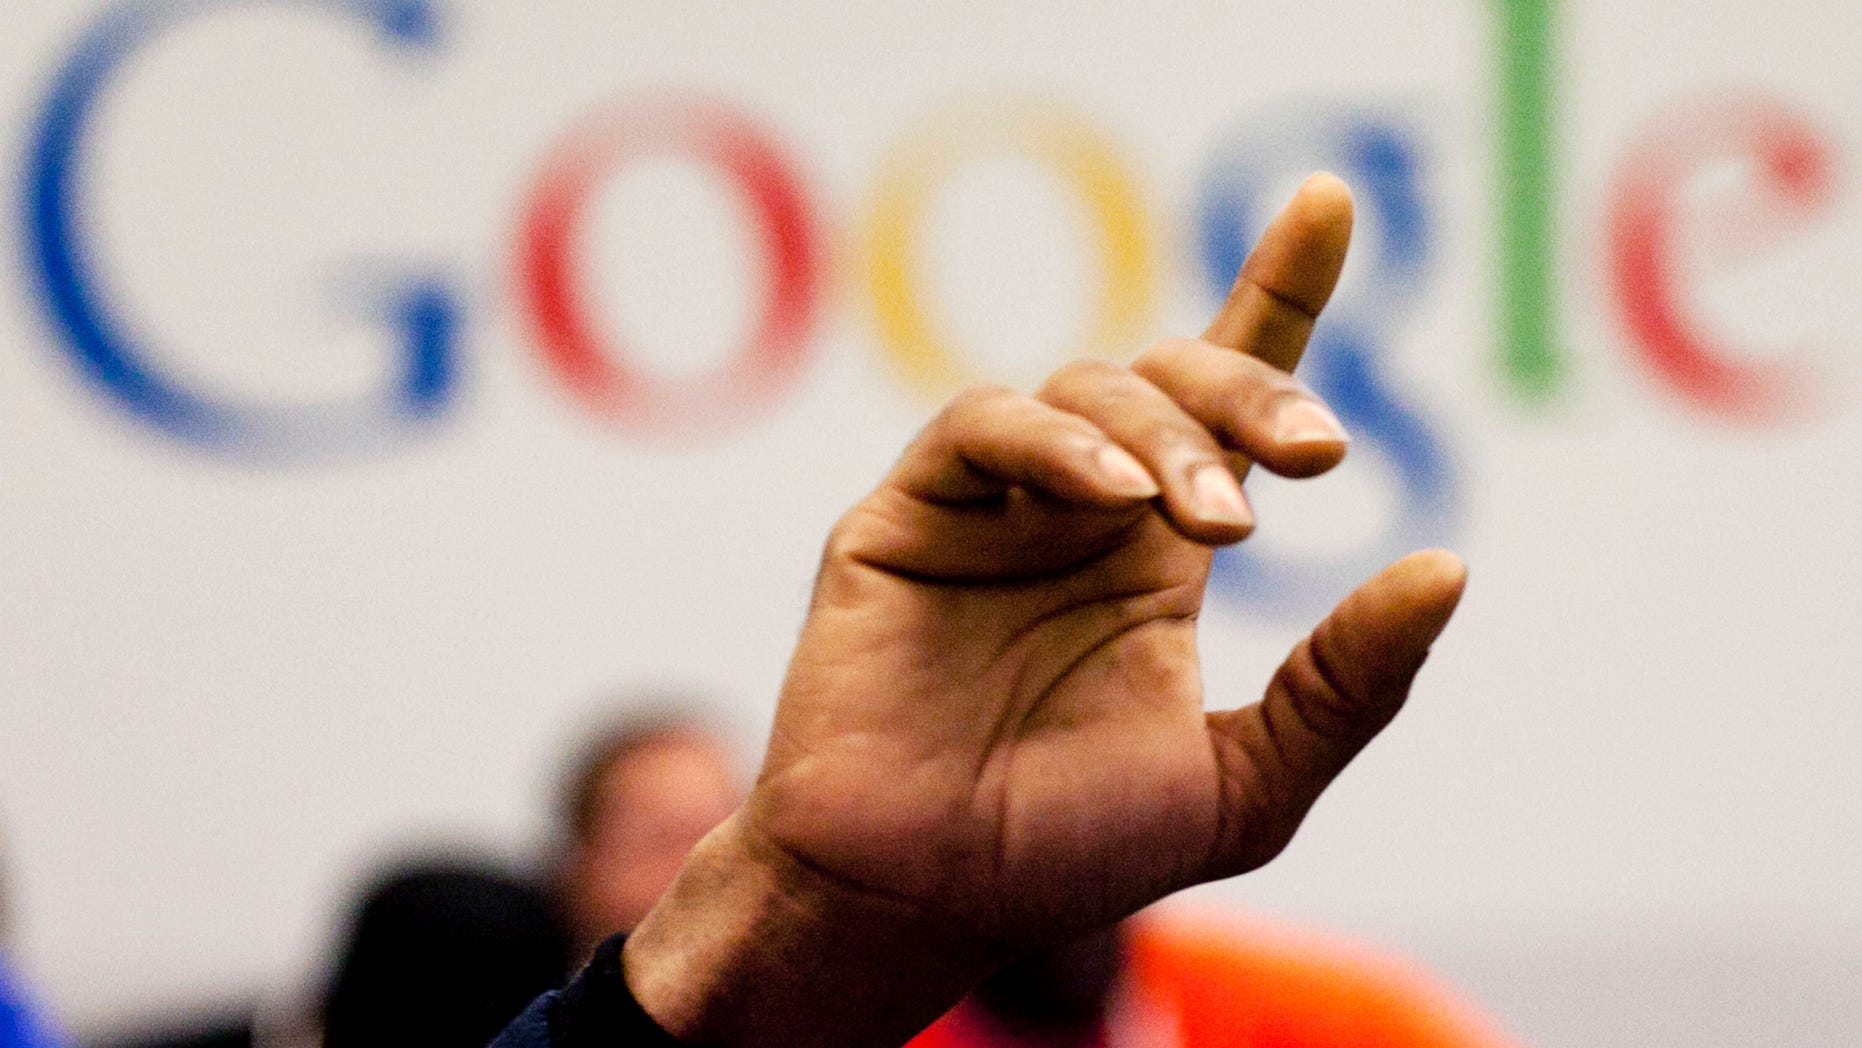 FILE - In this Oct. 17, 2012, file photo, a man raises his hand during at Google offices in New York. People should have some say over the results that pop up when they conduct a search of their own name online, Europe's highest court said Tuesday, May 13, 2014. (AP Photo/Mark Lennihan, File)